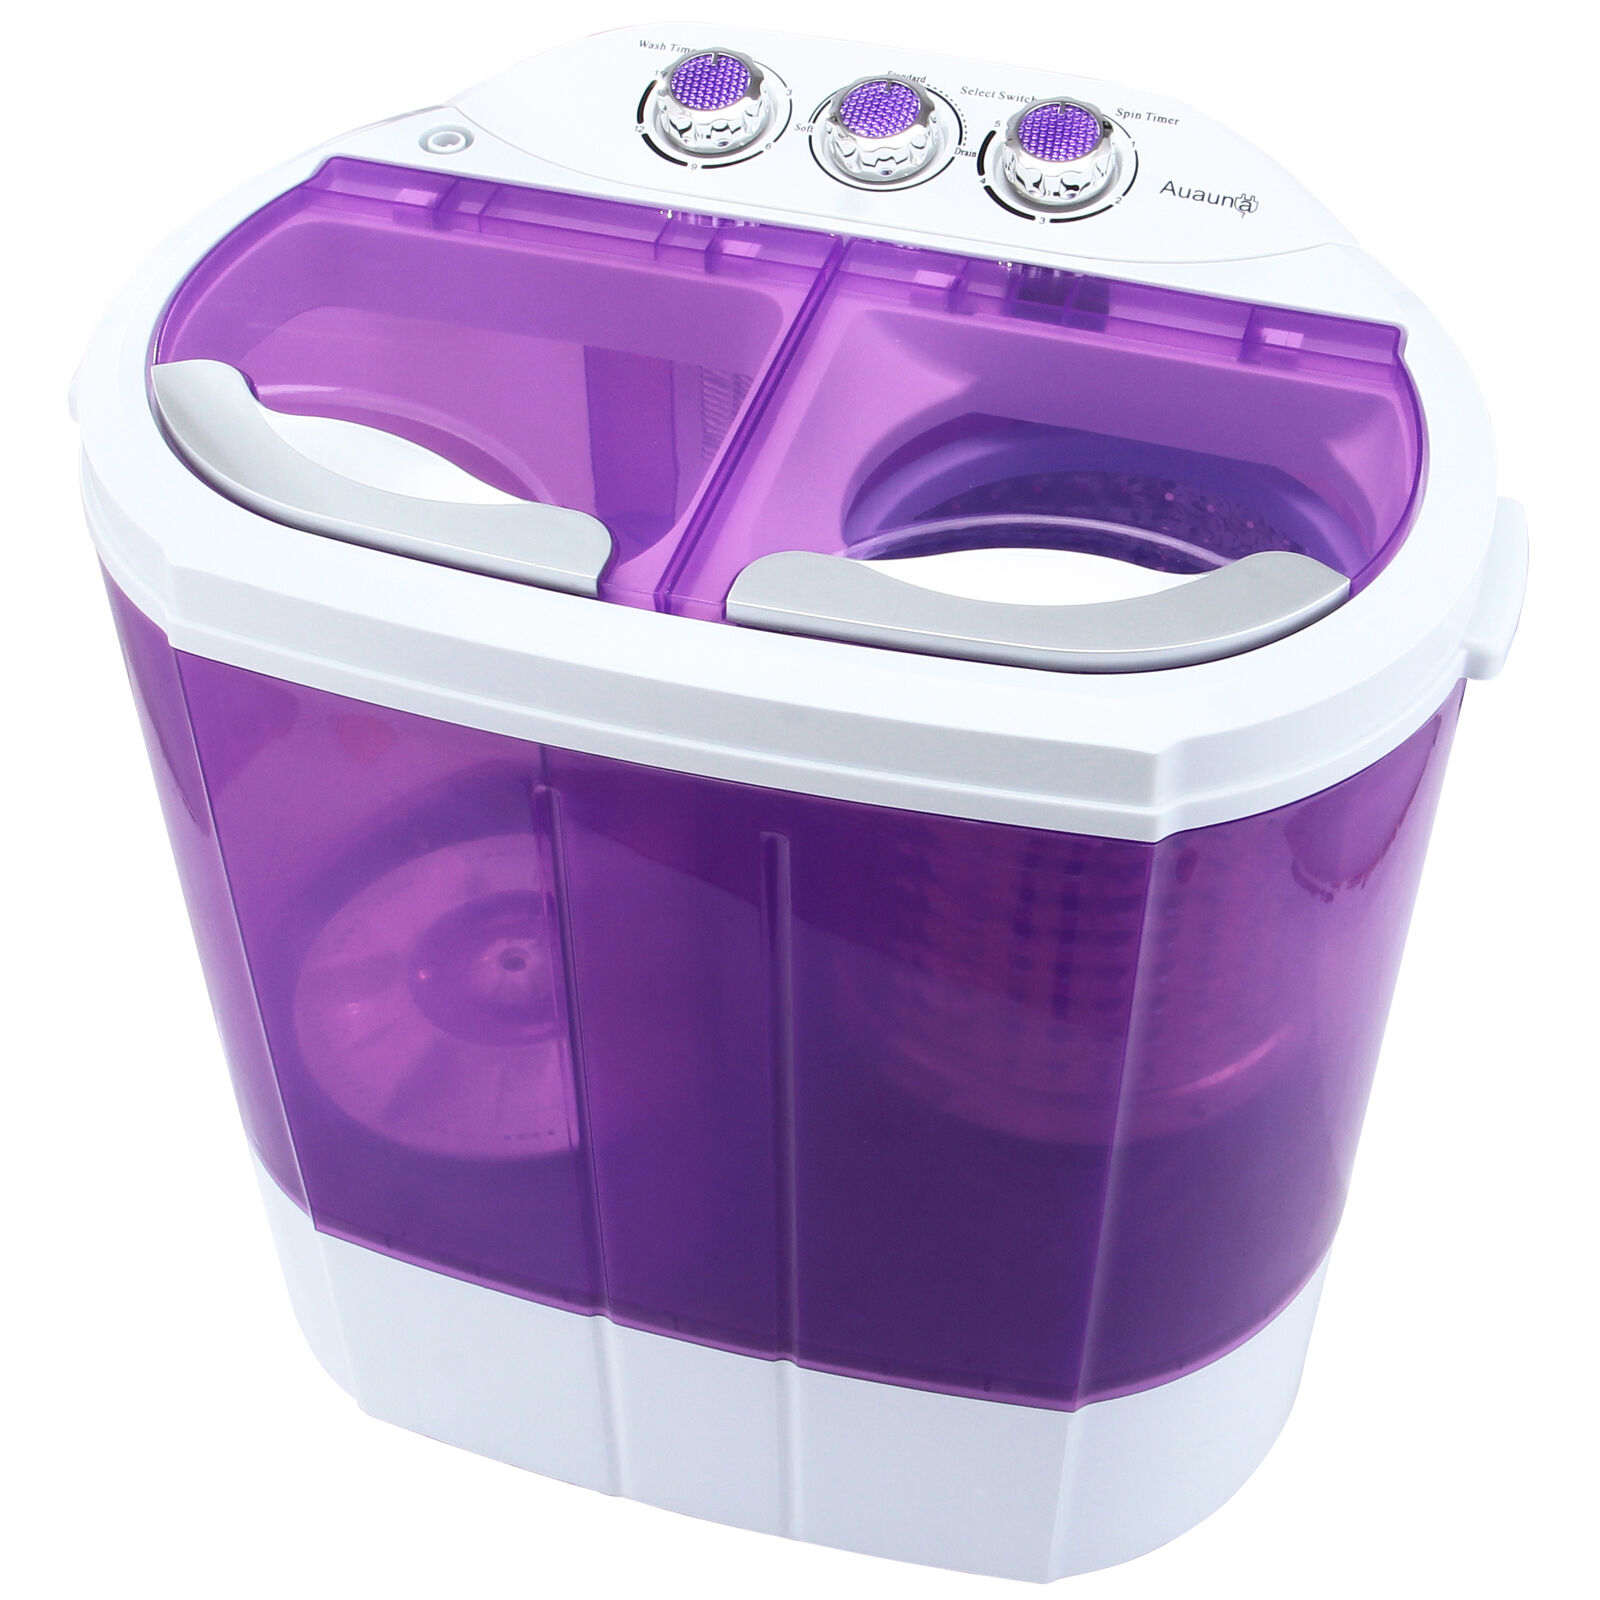 Apartment Washer: Mini 10lbs Portable Washing Machine Compact Washer Spin